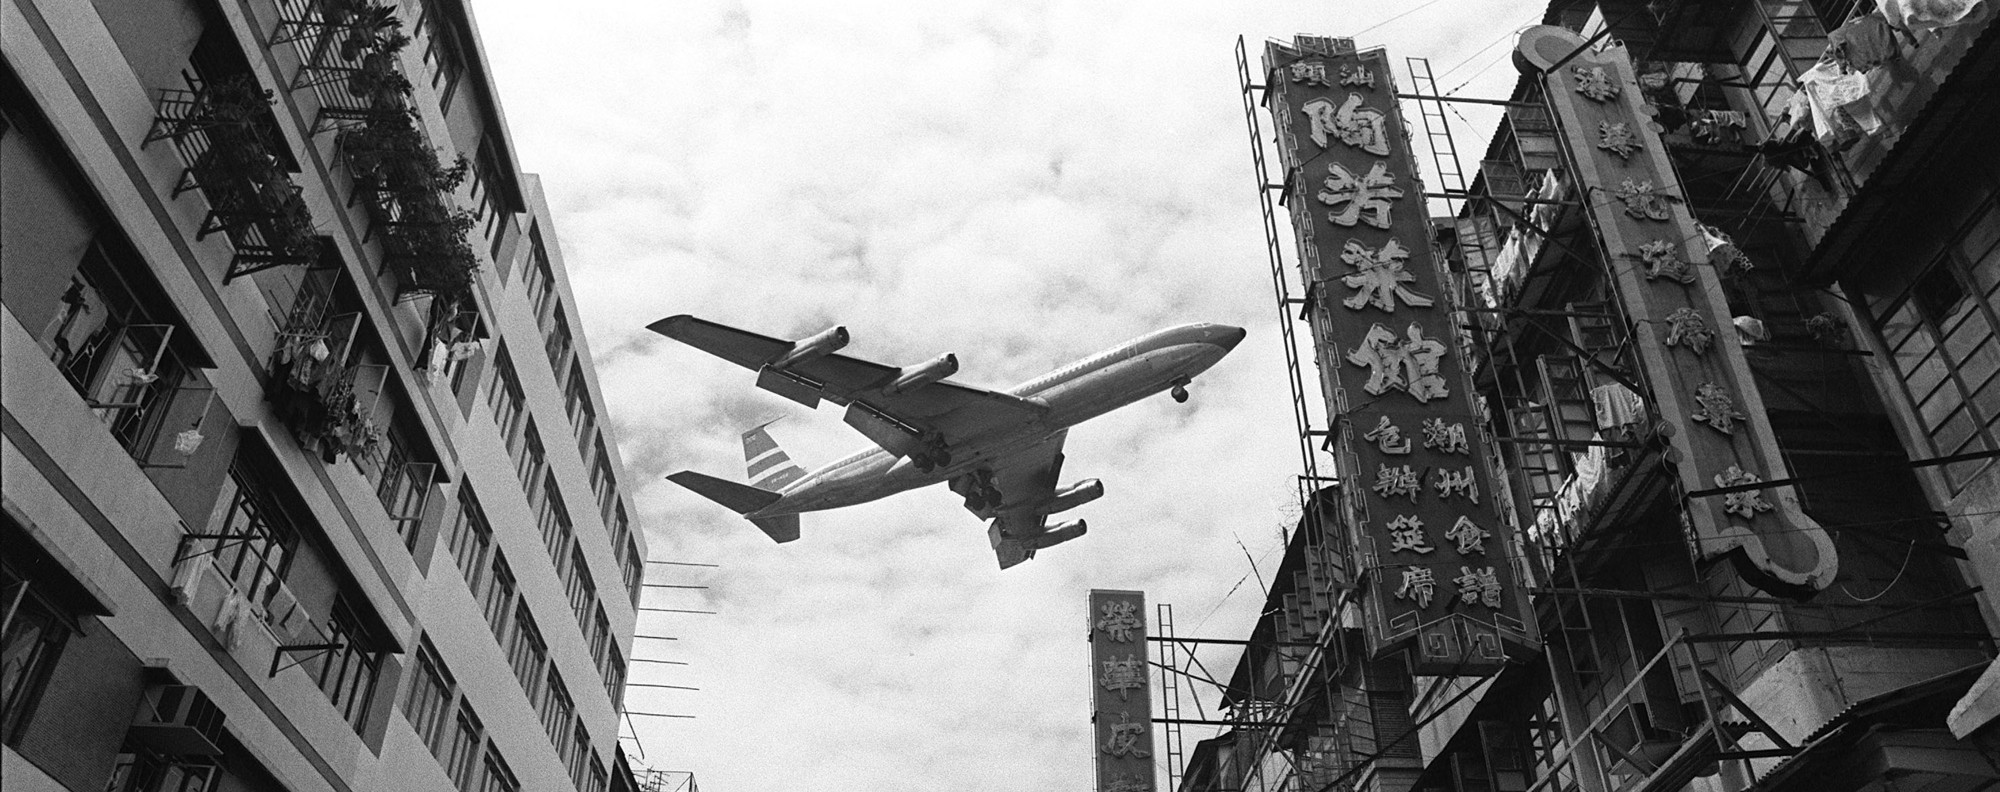 A Cathay Pacific plane flies over low-rise buildings in Kowloon City. Picture: SCMP